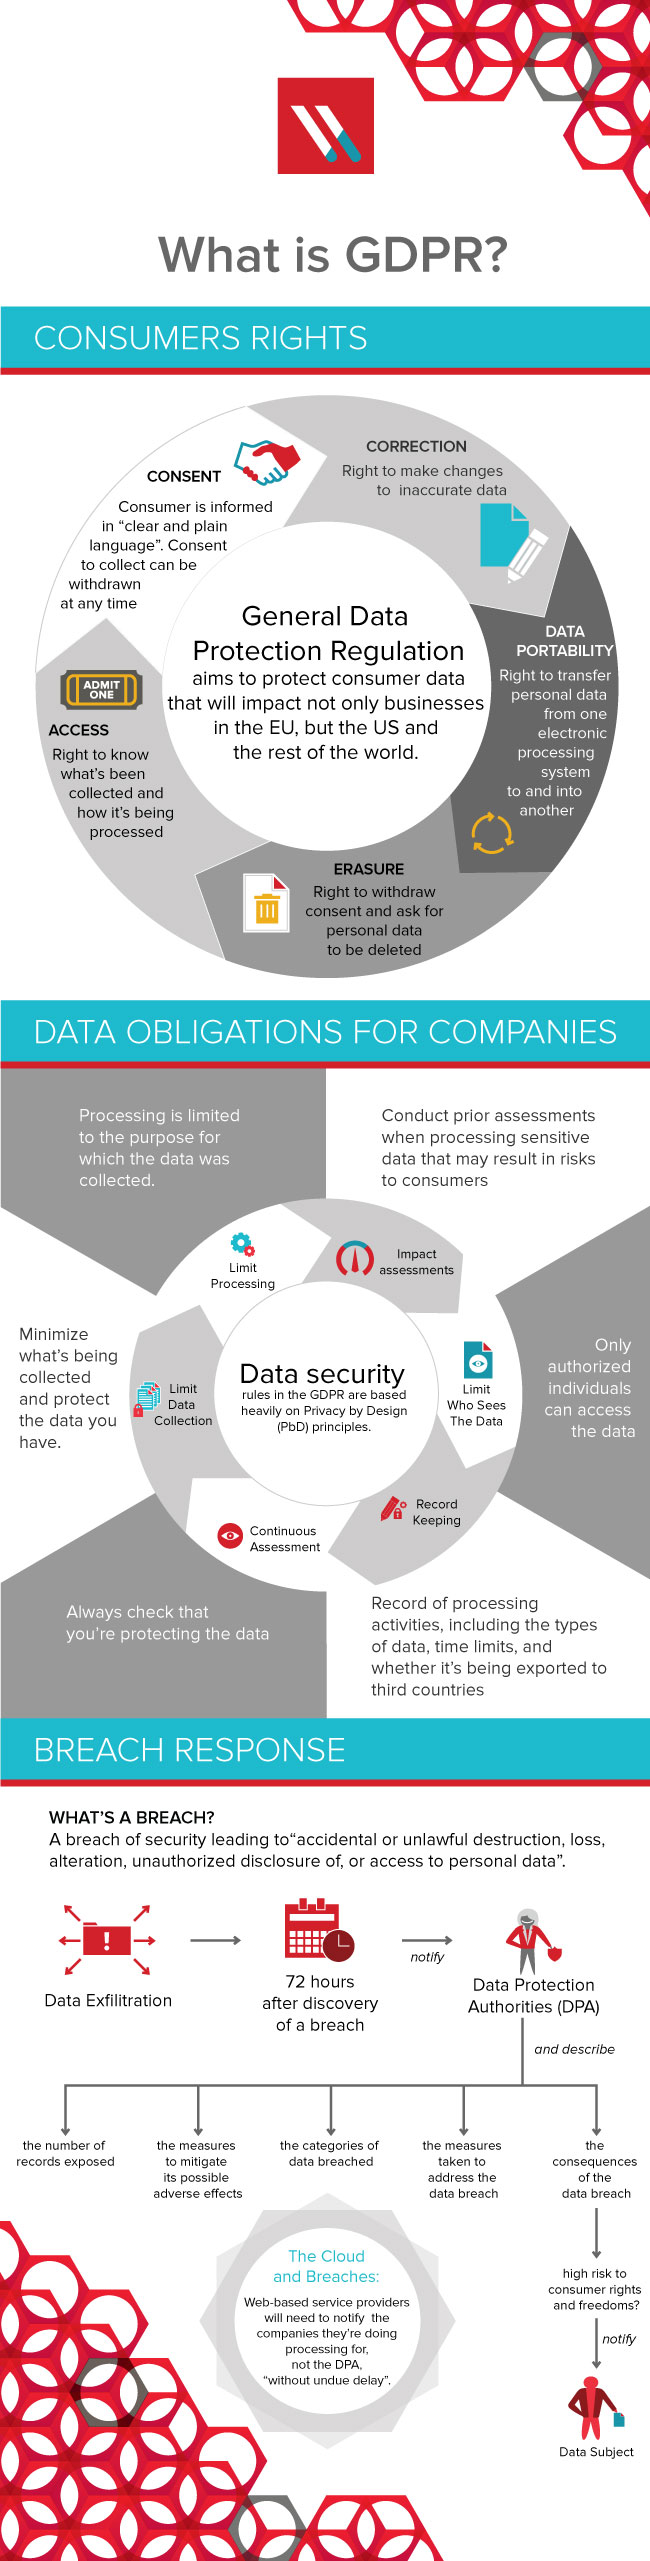 GDPR – Consumer Rights, Data Obligations and Breach Responses This infographic nicely captures GDPR, explaining the 3 key areas:  Consumer Rights Data Obligations for Companies Breach Response